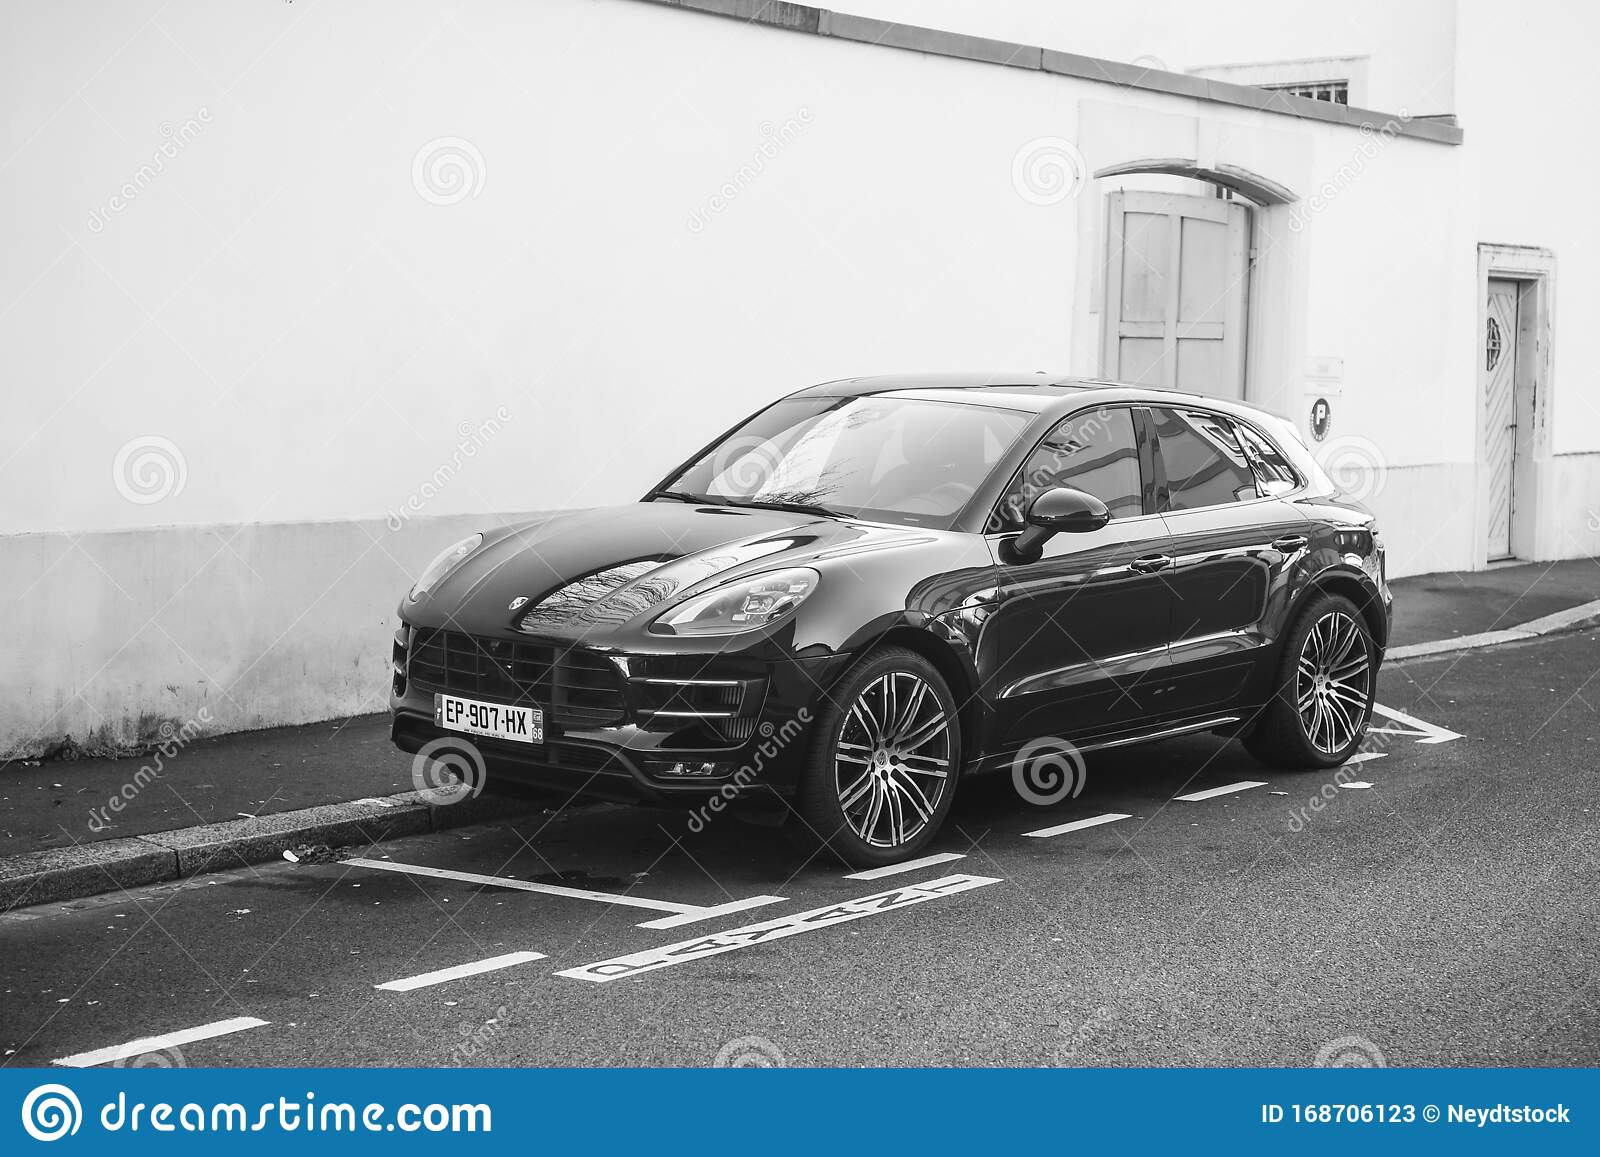 Black Porsche Macan Turbo Parked In The Street Editorial Stock Photo Image Of Macan Germany 168706123